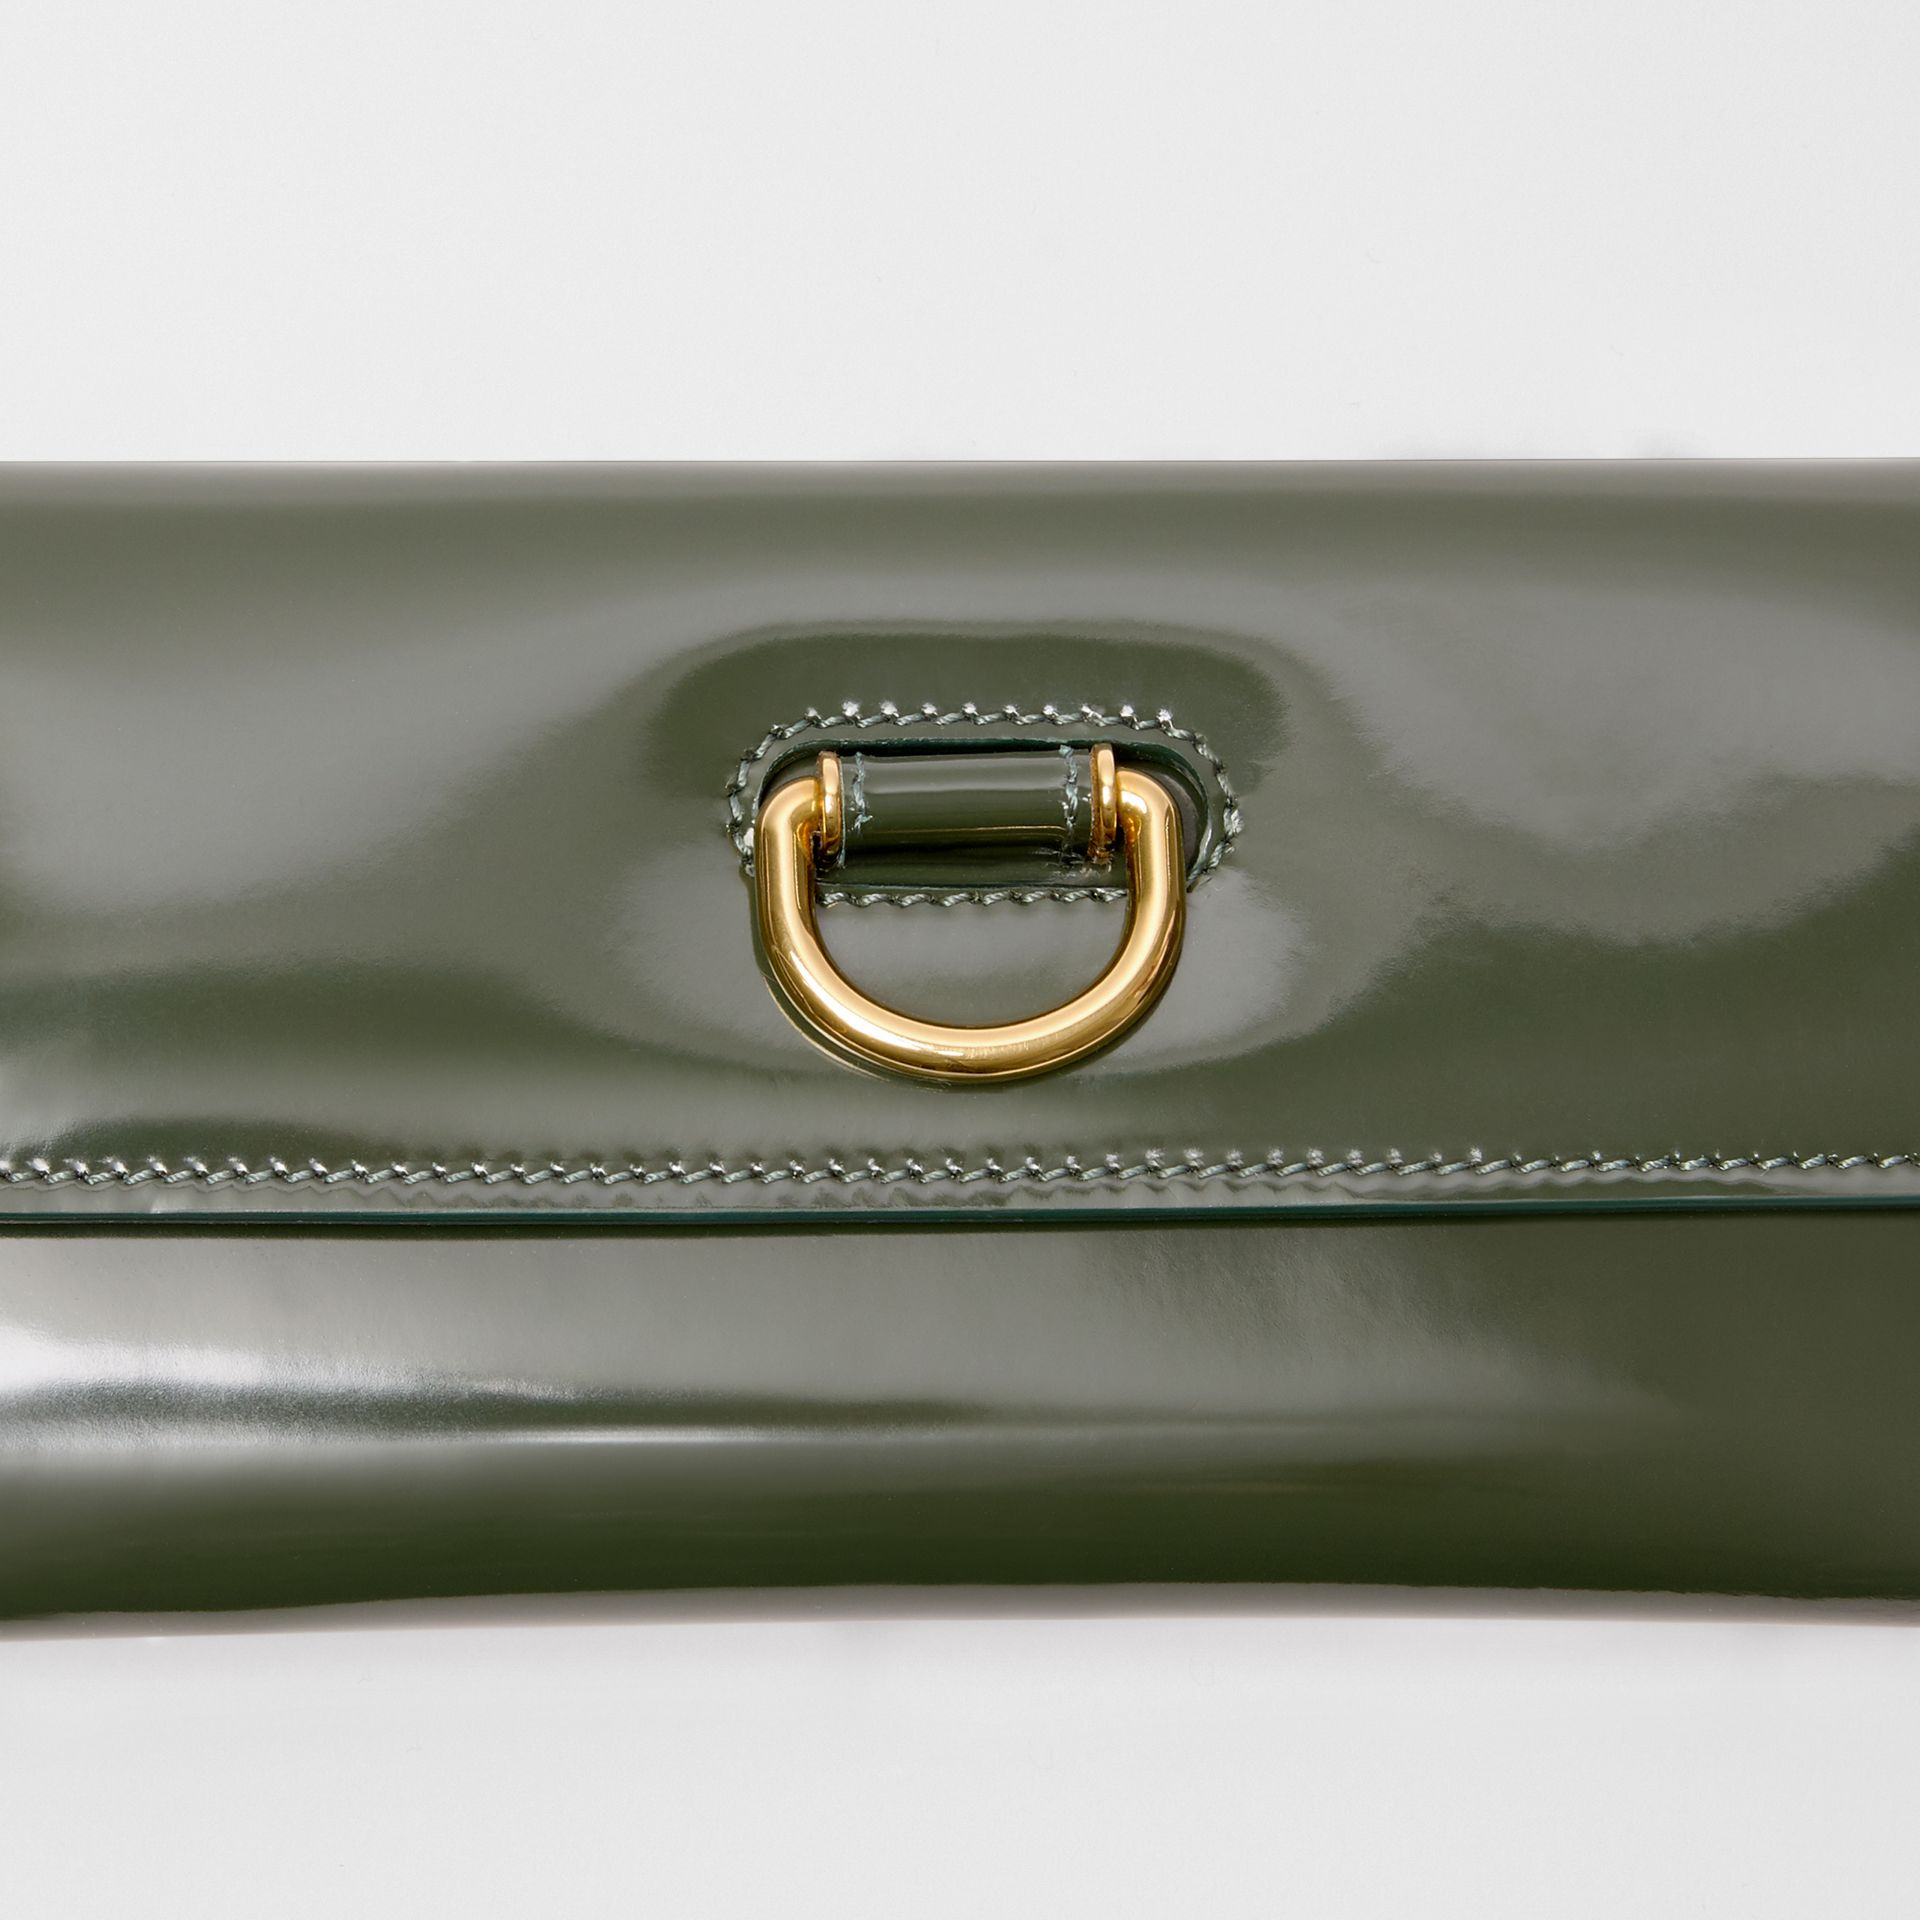 D-ring Patent Leather Continental Wallet in Dark Forest Green - Women | Burberry United States - gallery image 1